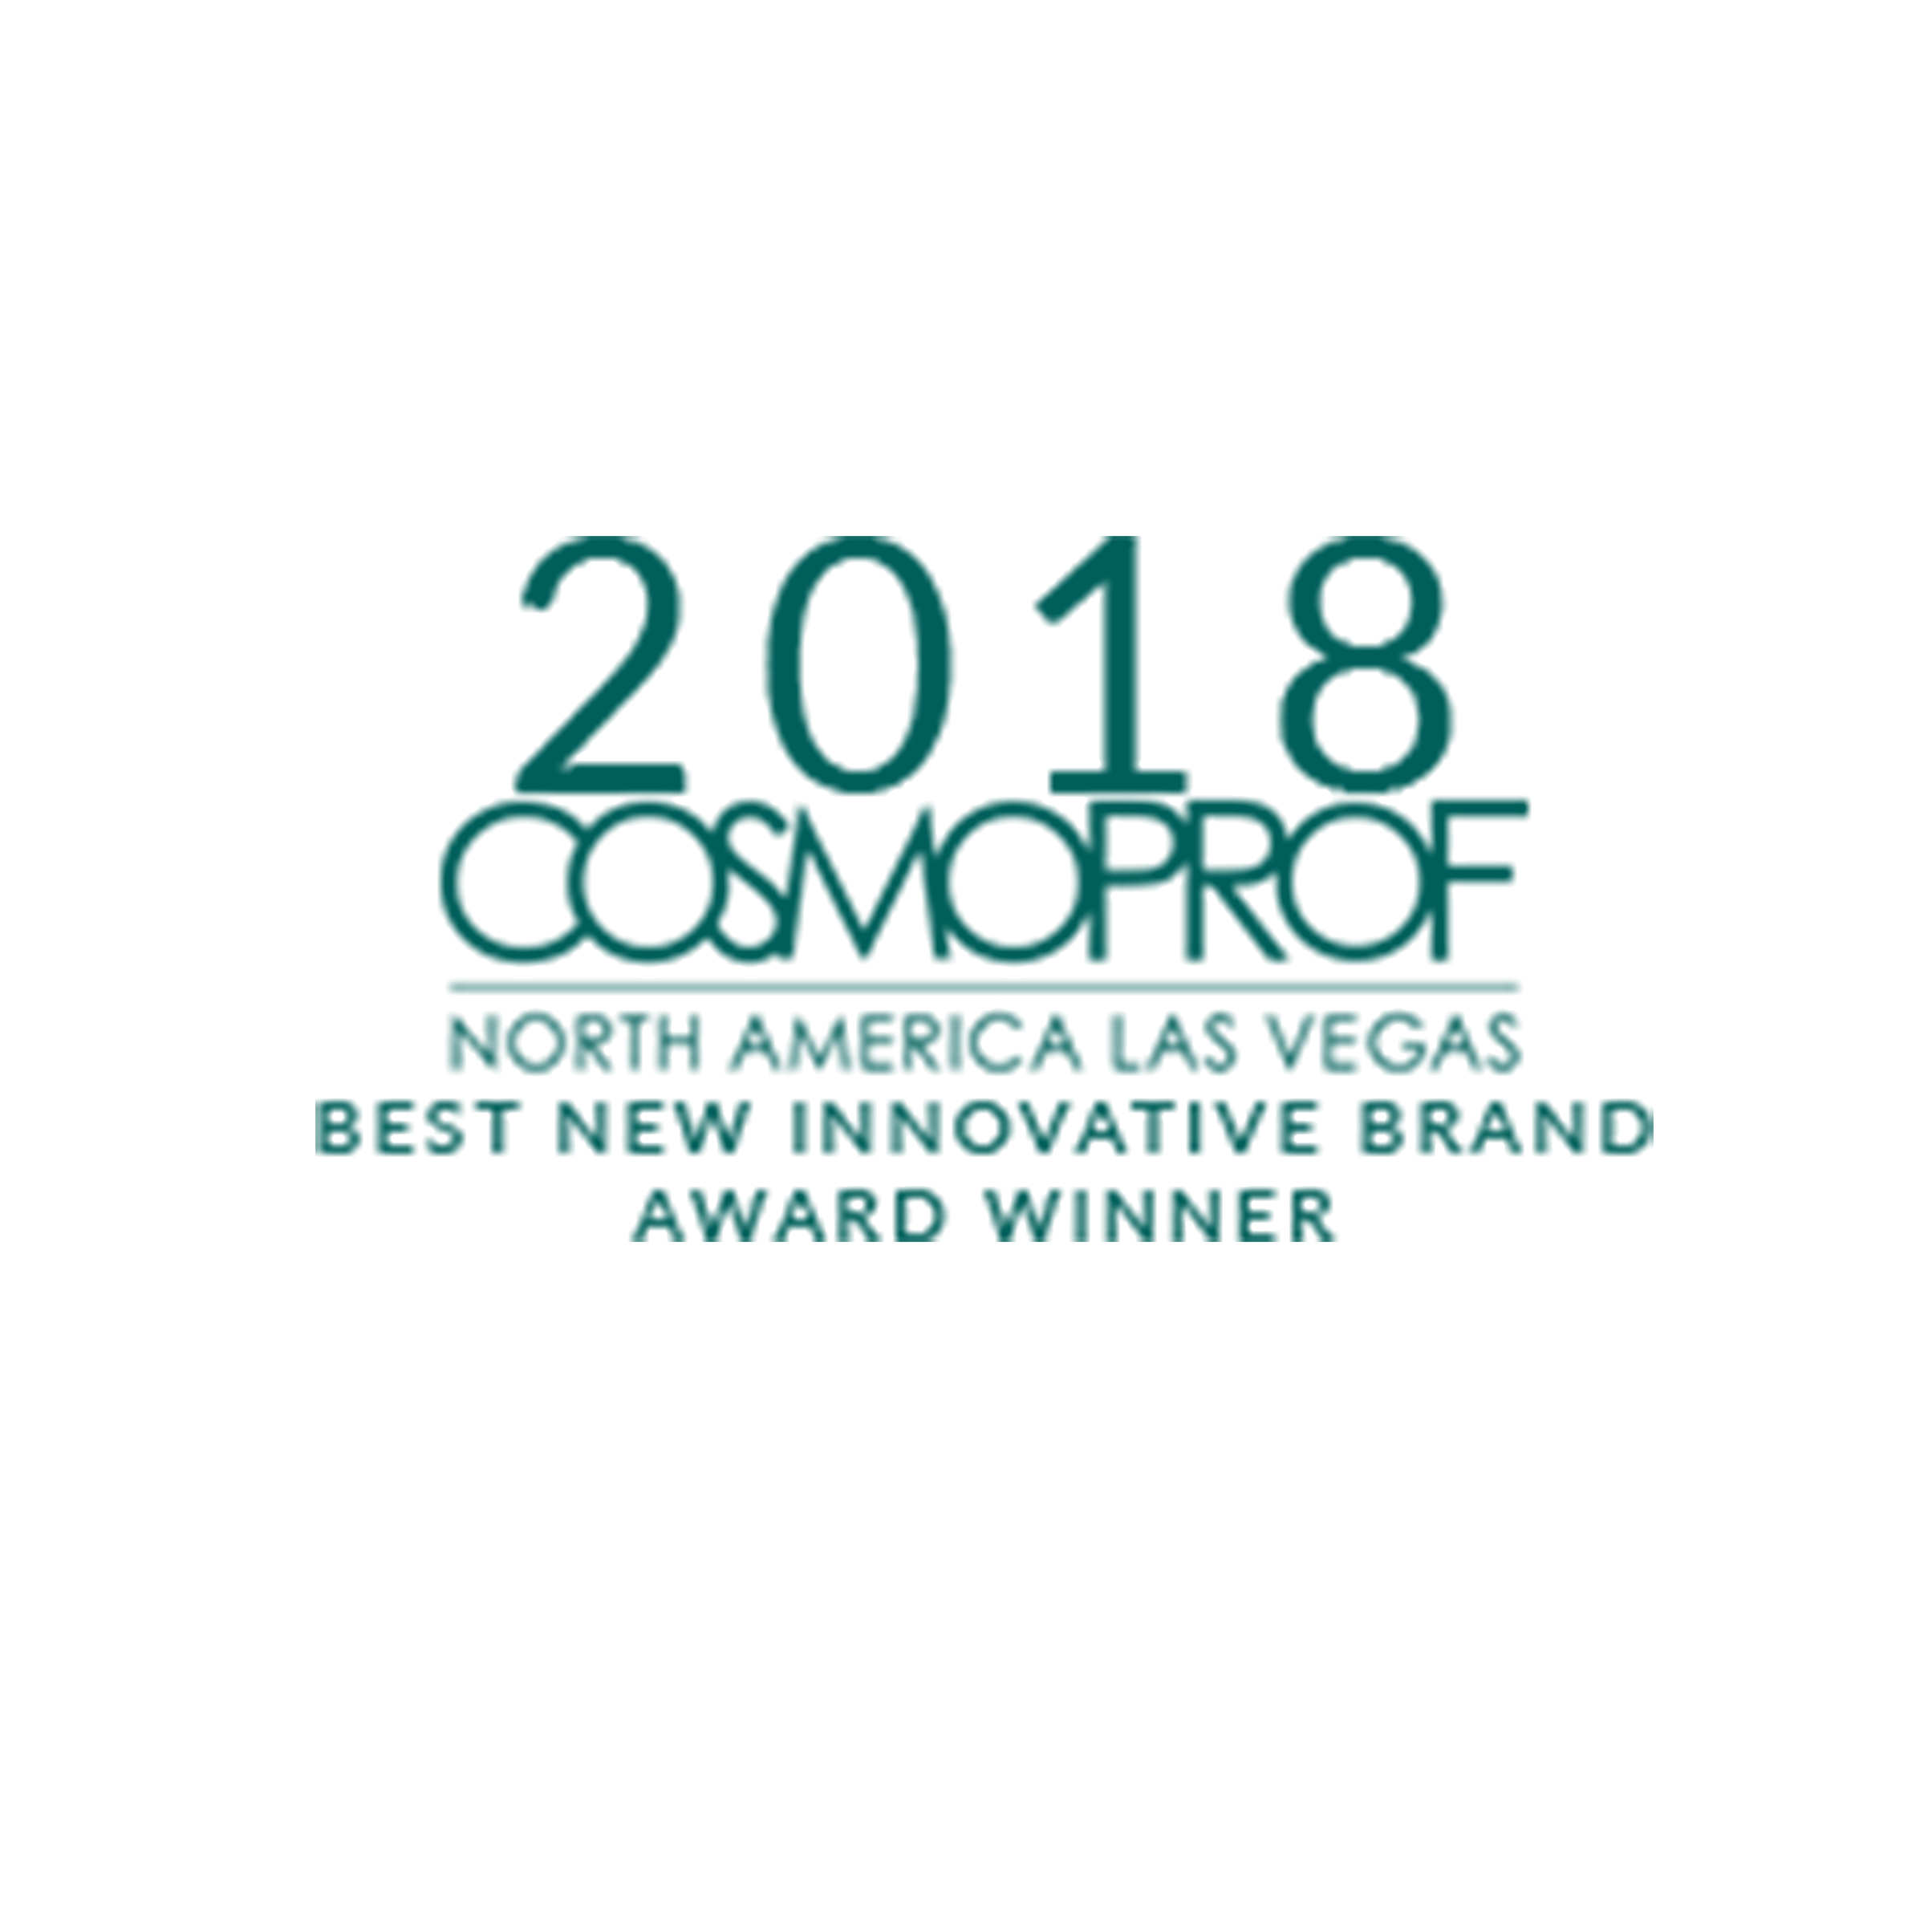 2018 Tones Of Beauty Best New Innovative Brand